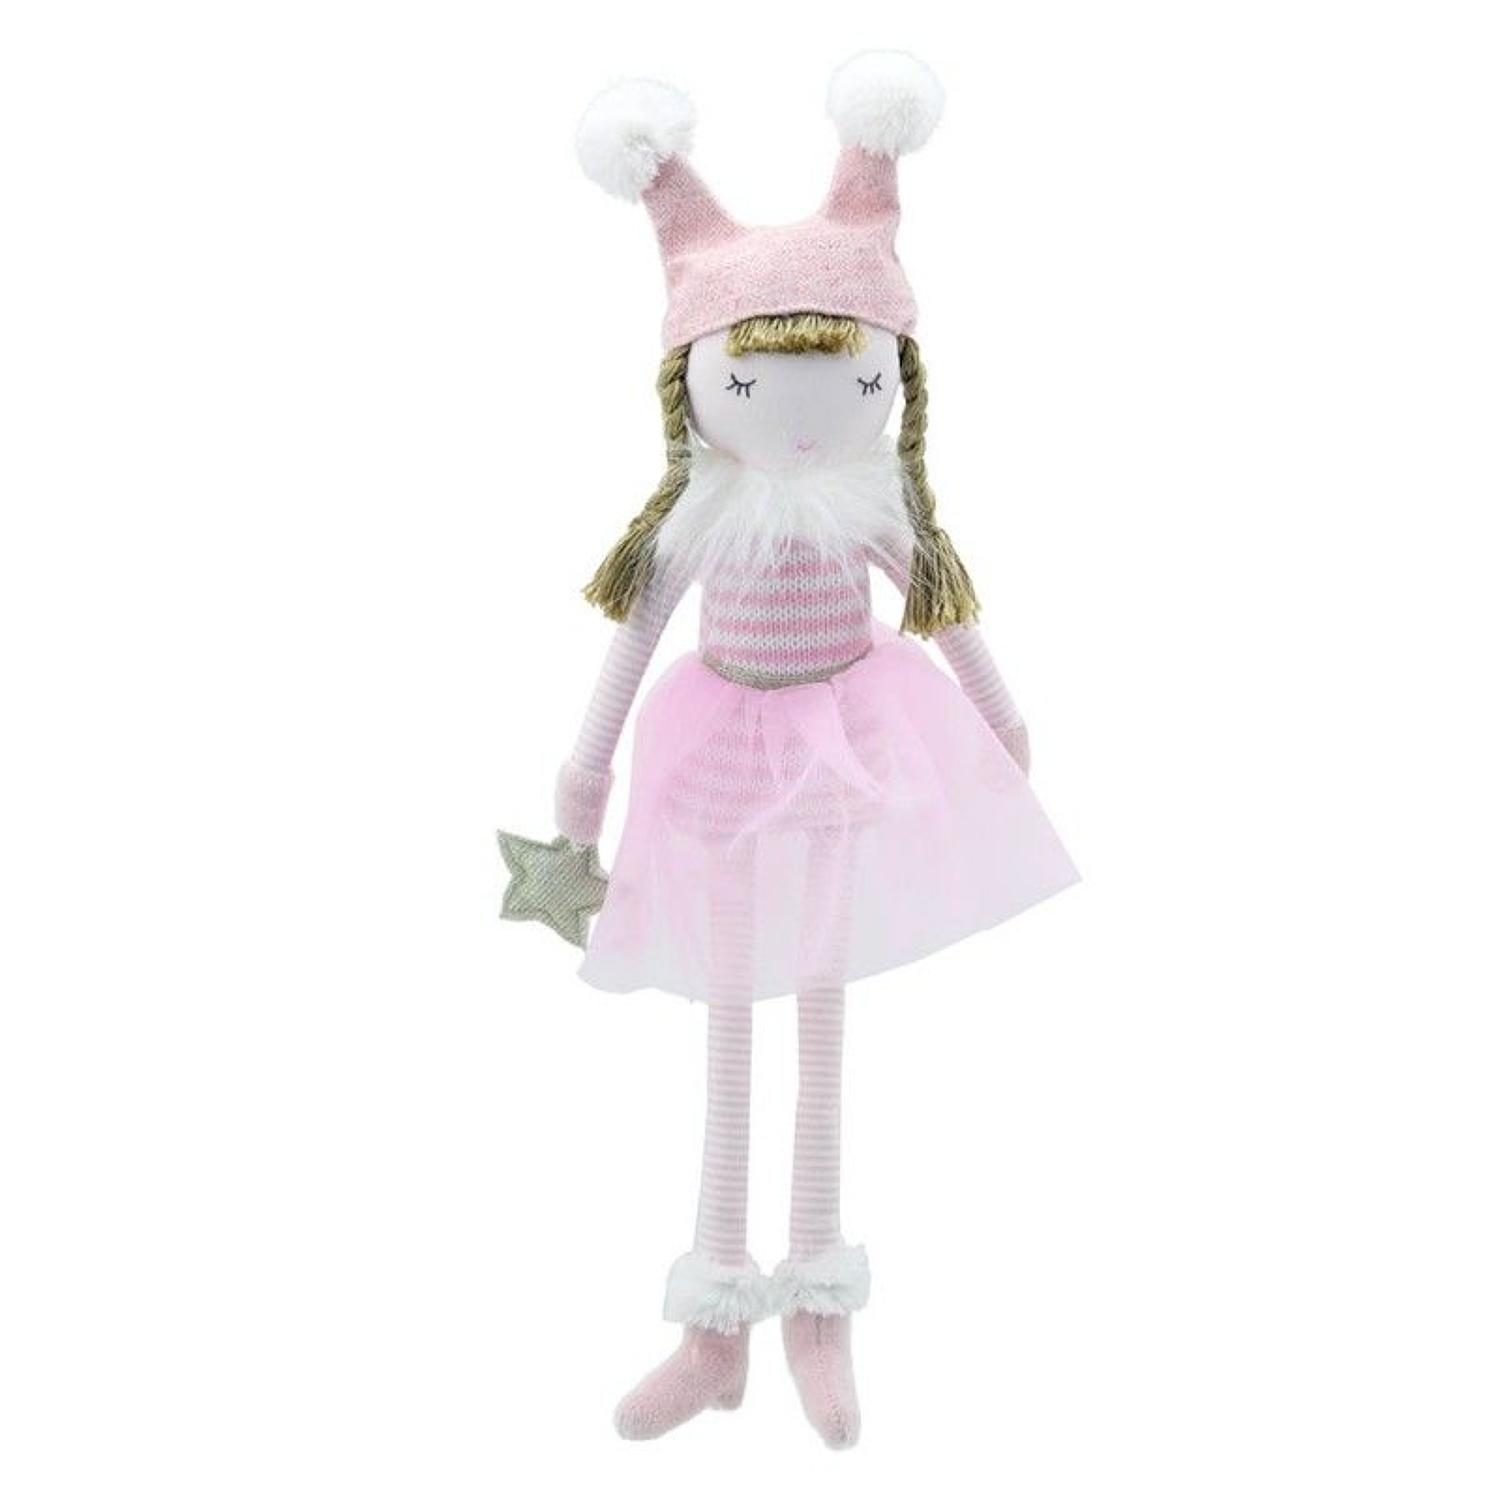 Wilberry small pink doll